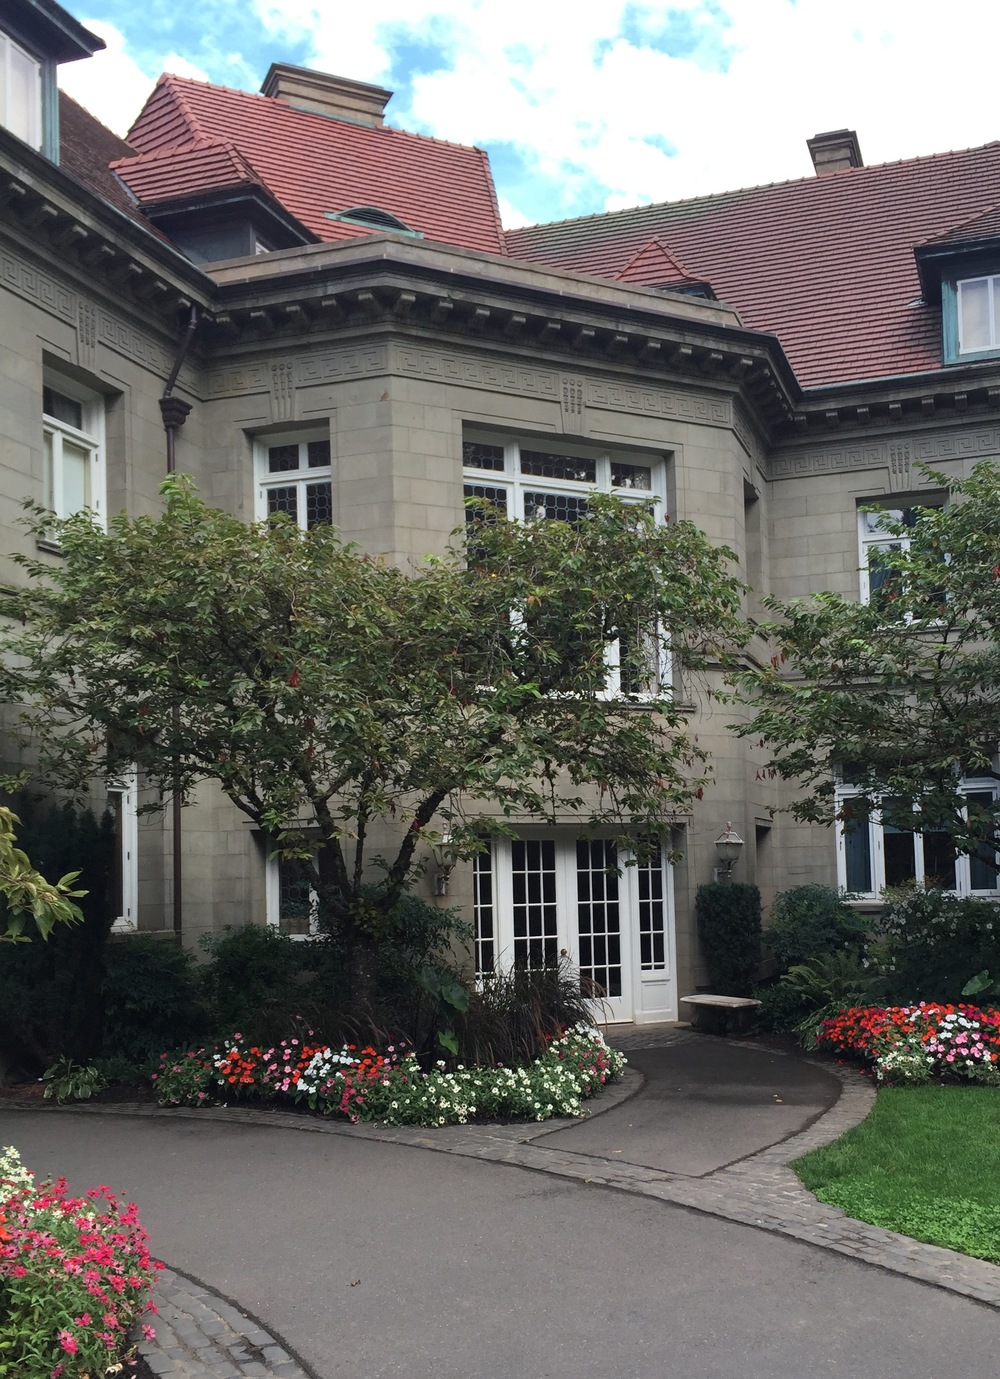 Fig. 2 Pittock Mansion - Rear Facade, entry to stair hall, image by author